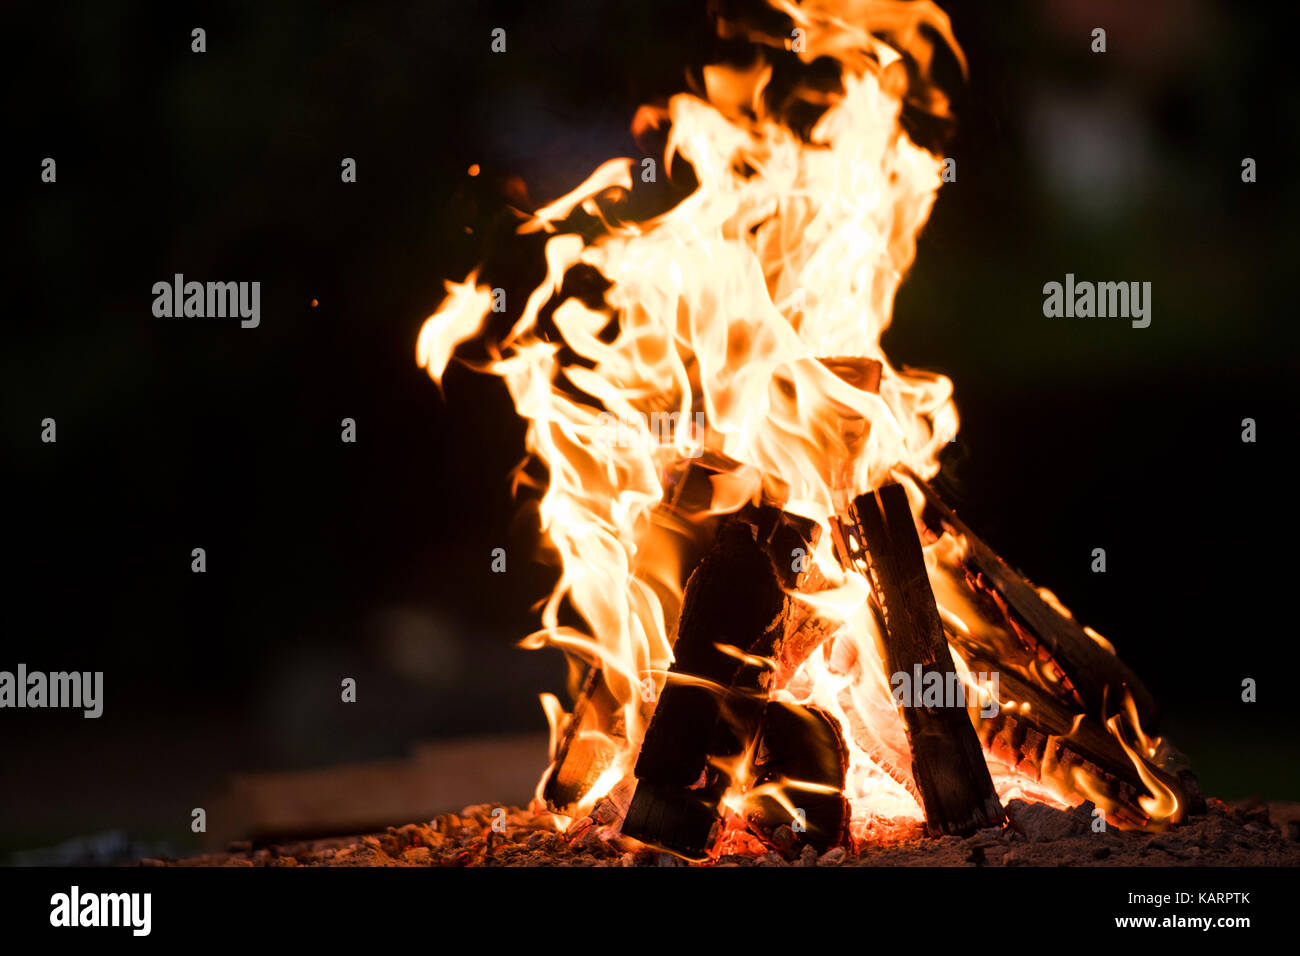 Fireplace outside in the dark. - Stock Image